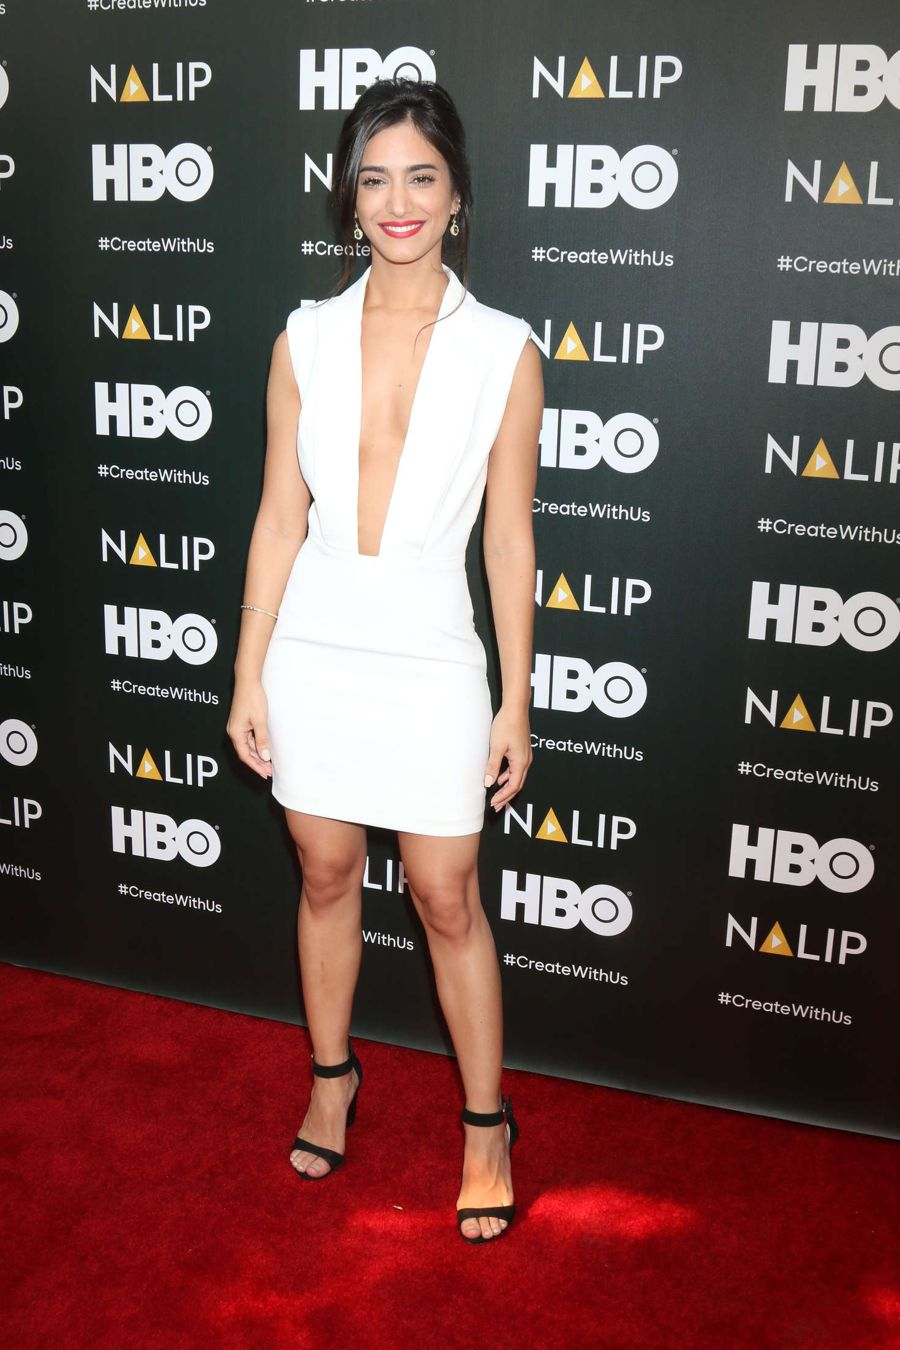 Sol Rodriguez - NALIP 2016 Latino Media Awards in L.A.